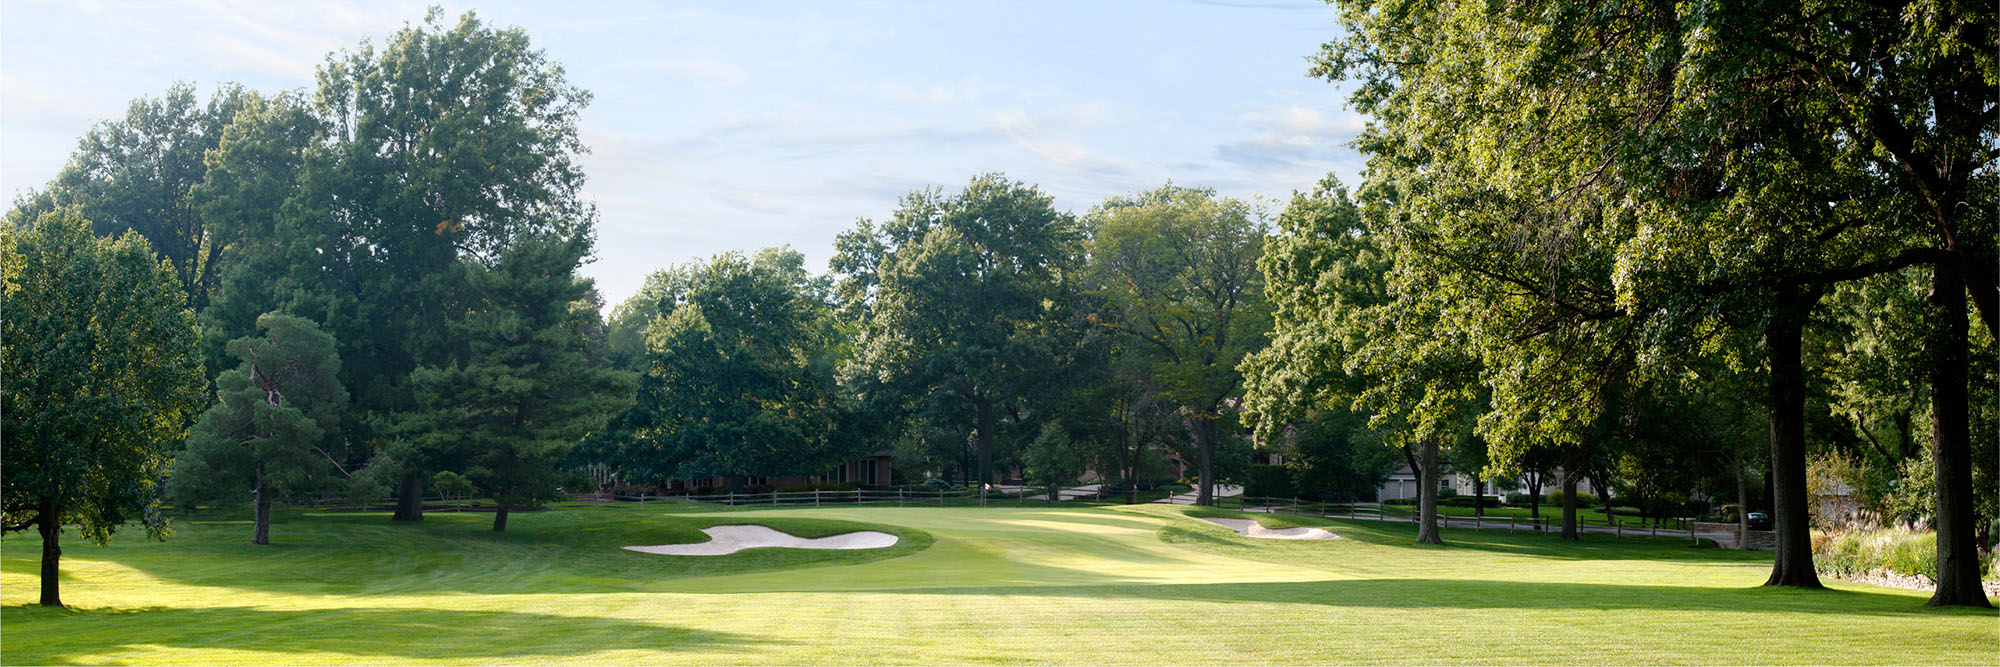 Golf Course Image - Indian Hills No. 13